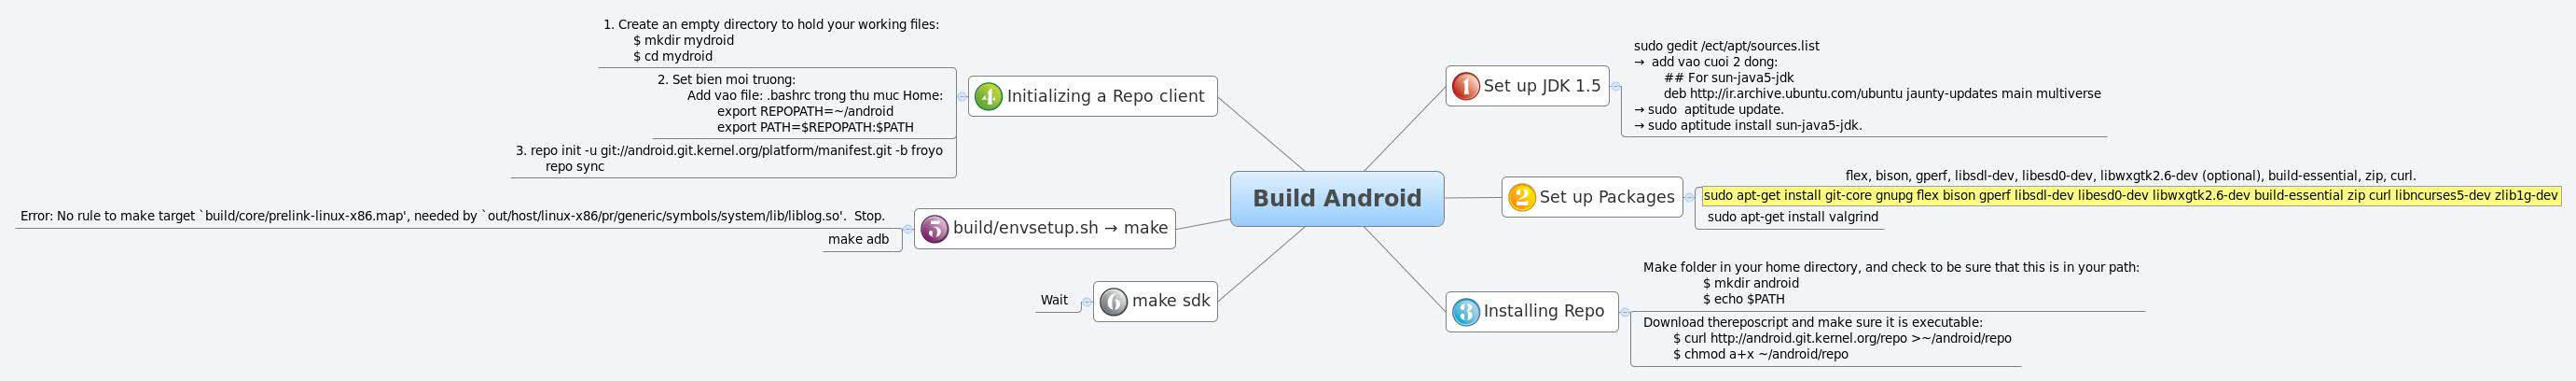 Build Android - XMind - Mind Mapping Software